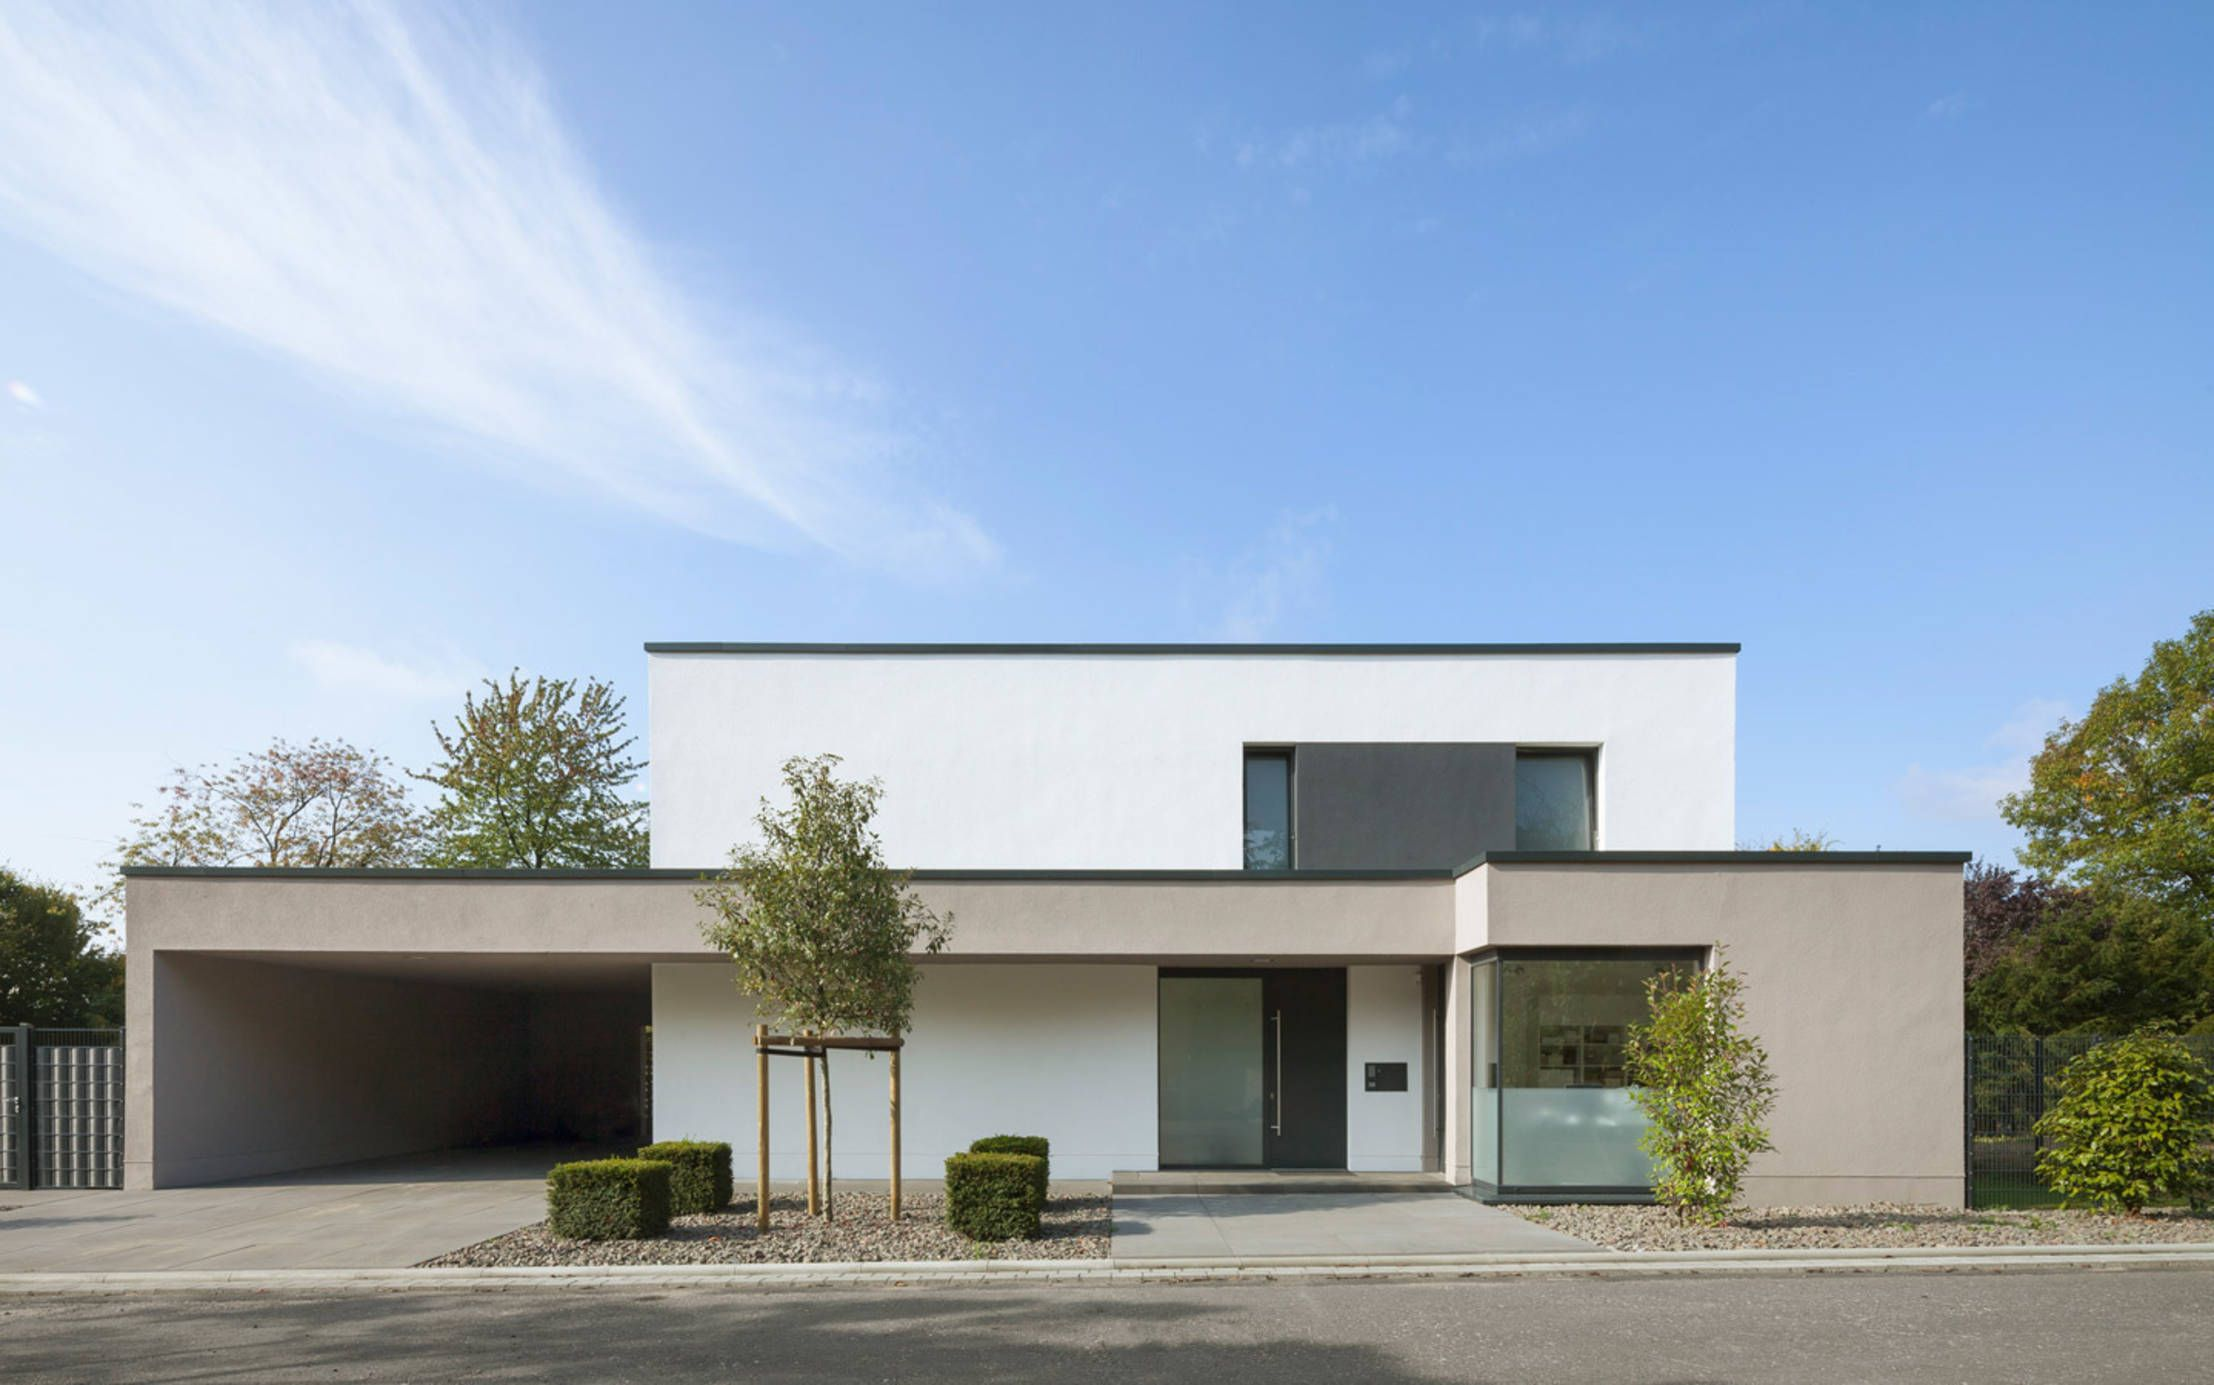 ^ 1000+ ideas about Hausfassade Farbe on Pinterest House siding ...